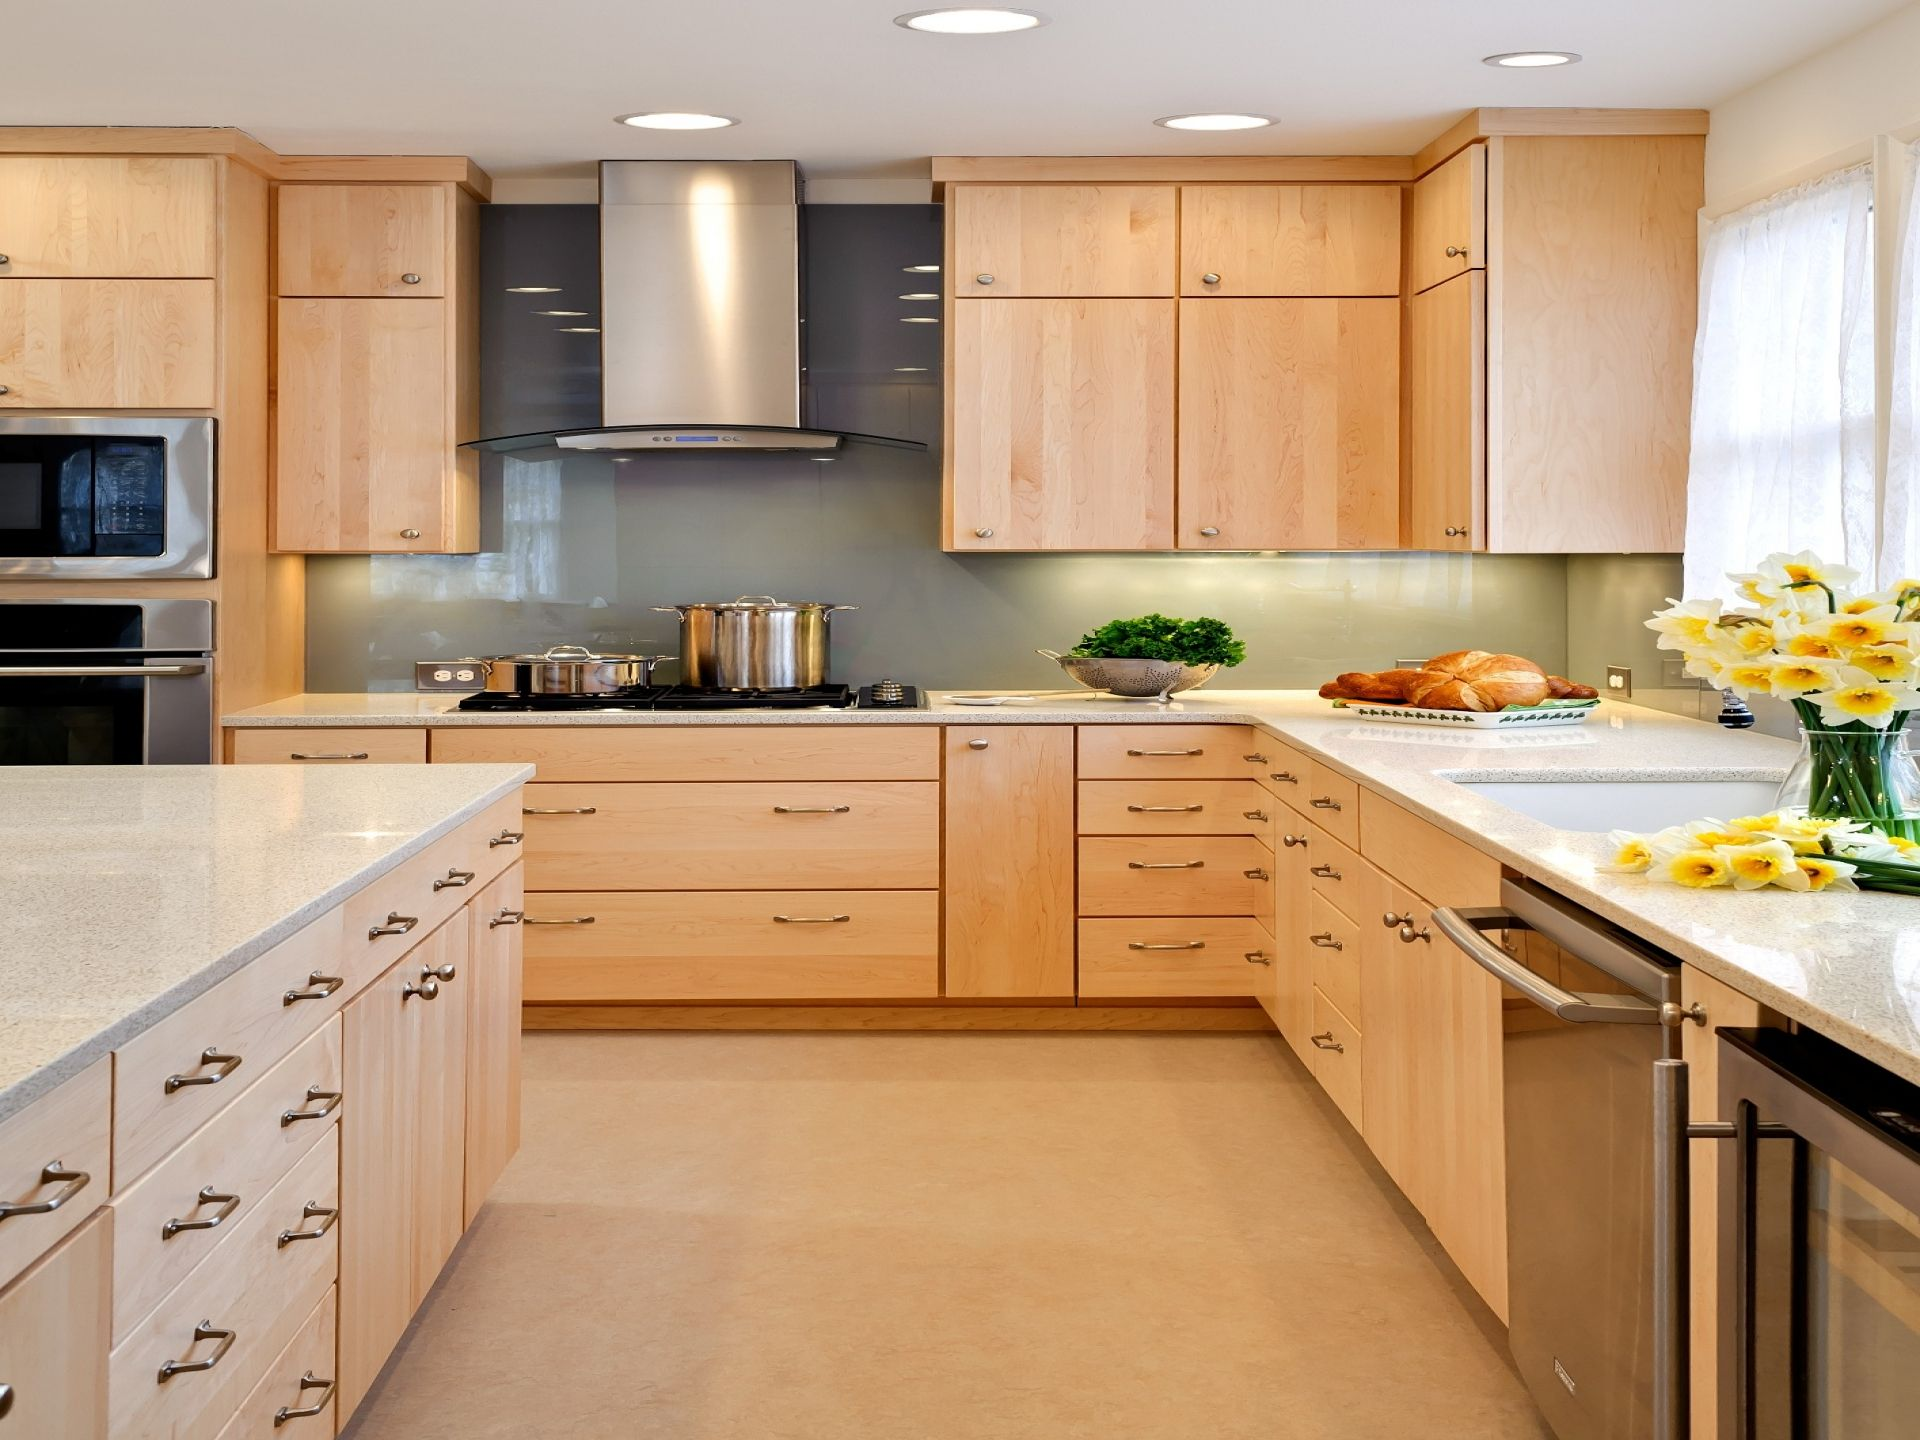 Natural Maple Kitchen Cabinets Design Inspiration 194838: kitchen colors with natural wood cabinets